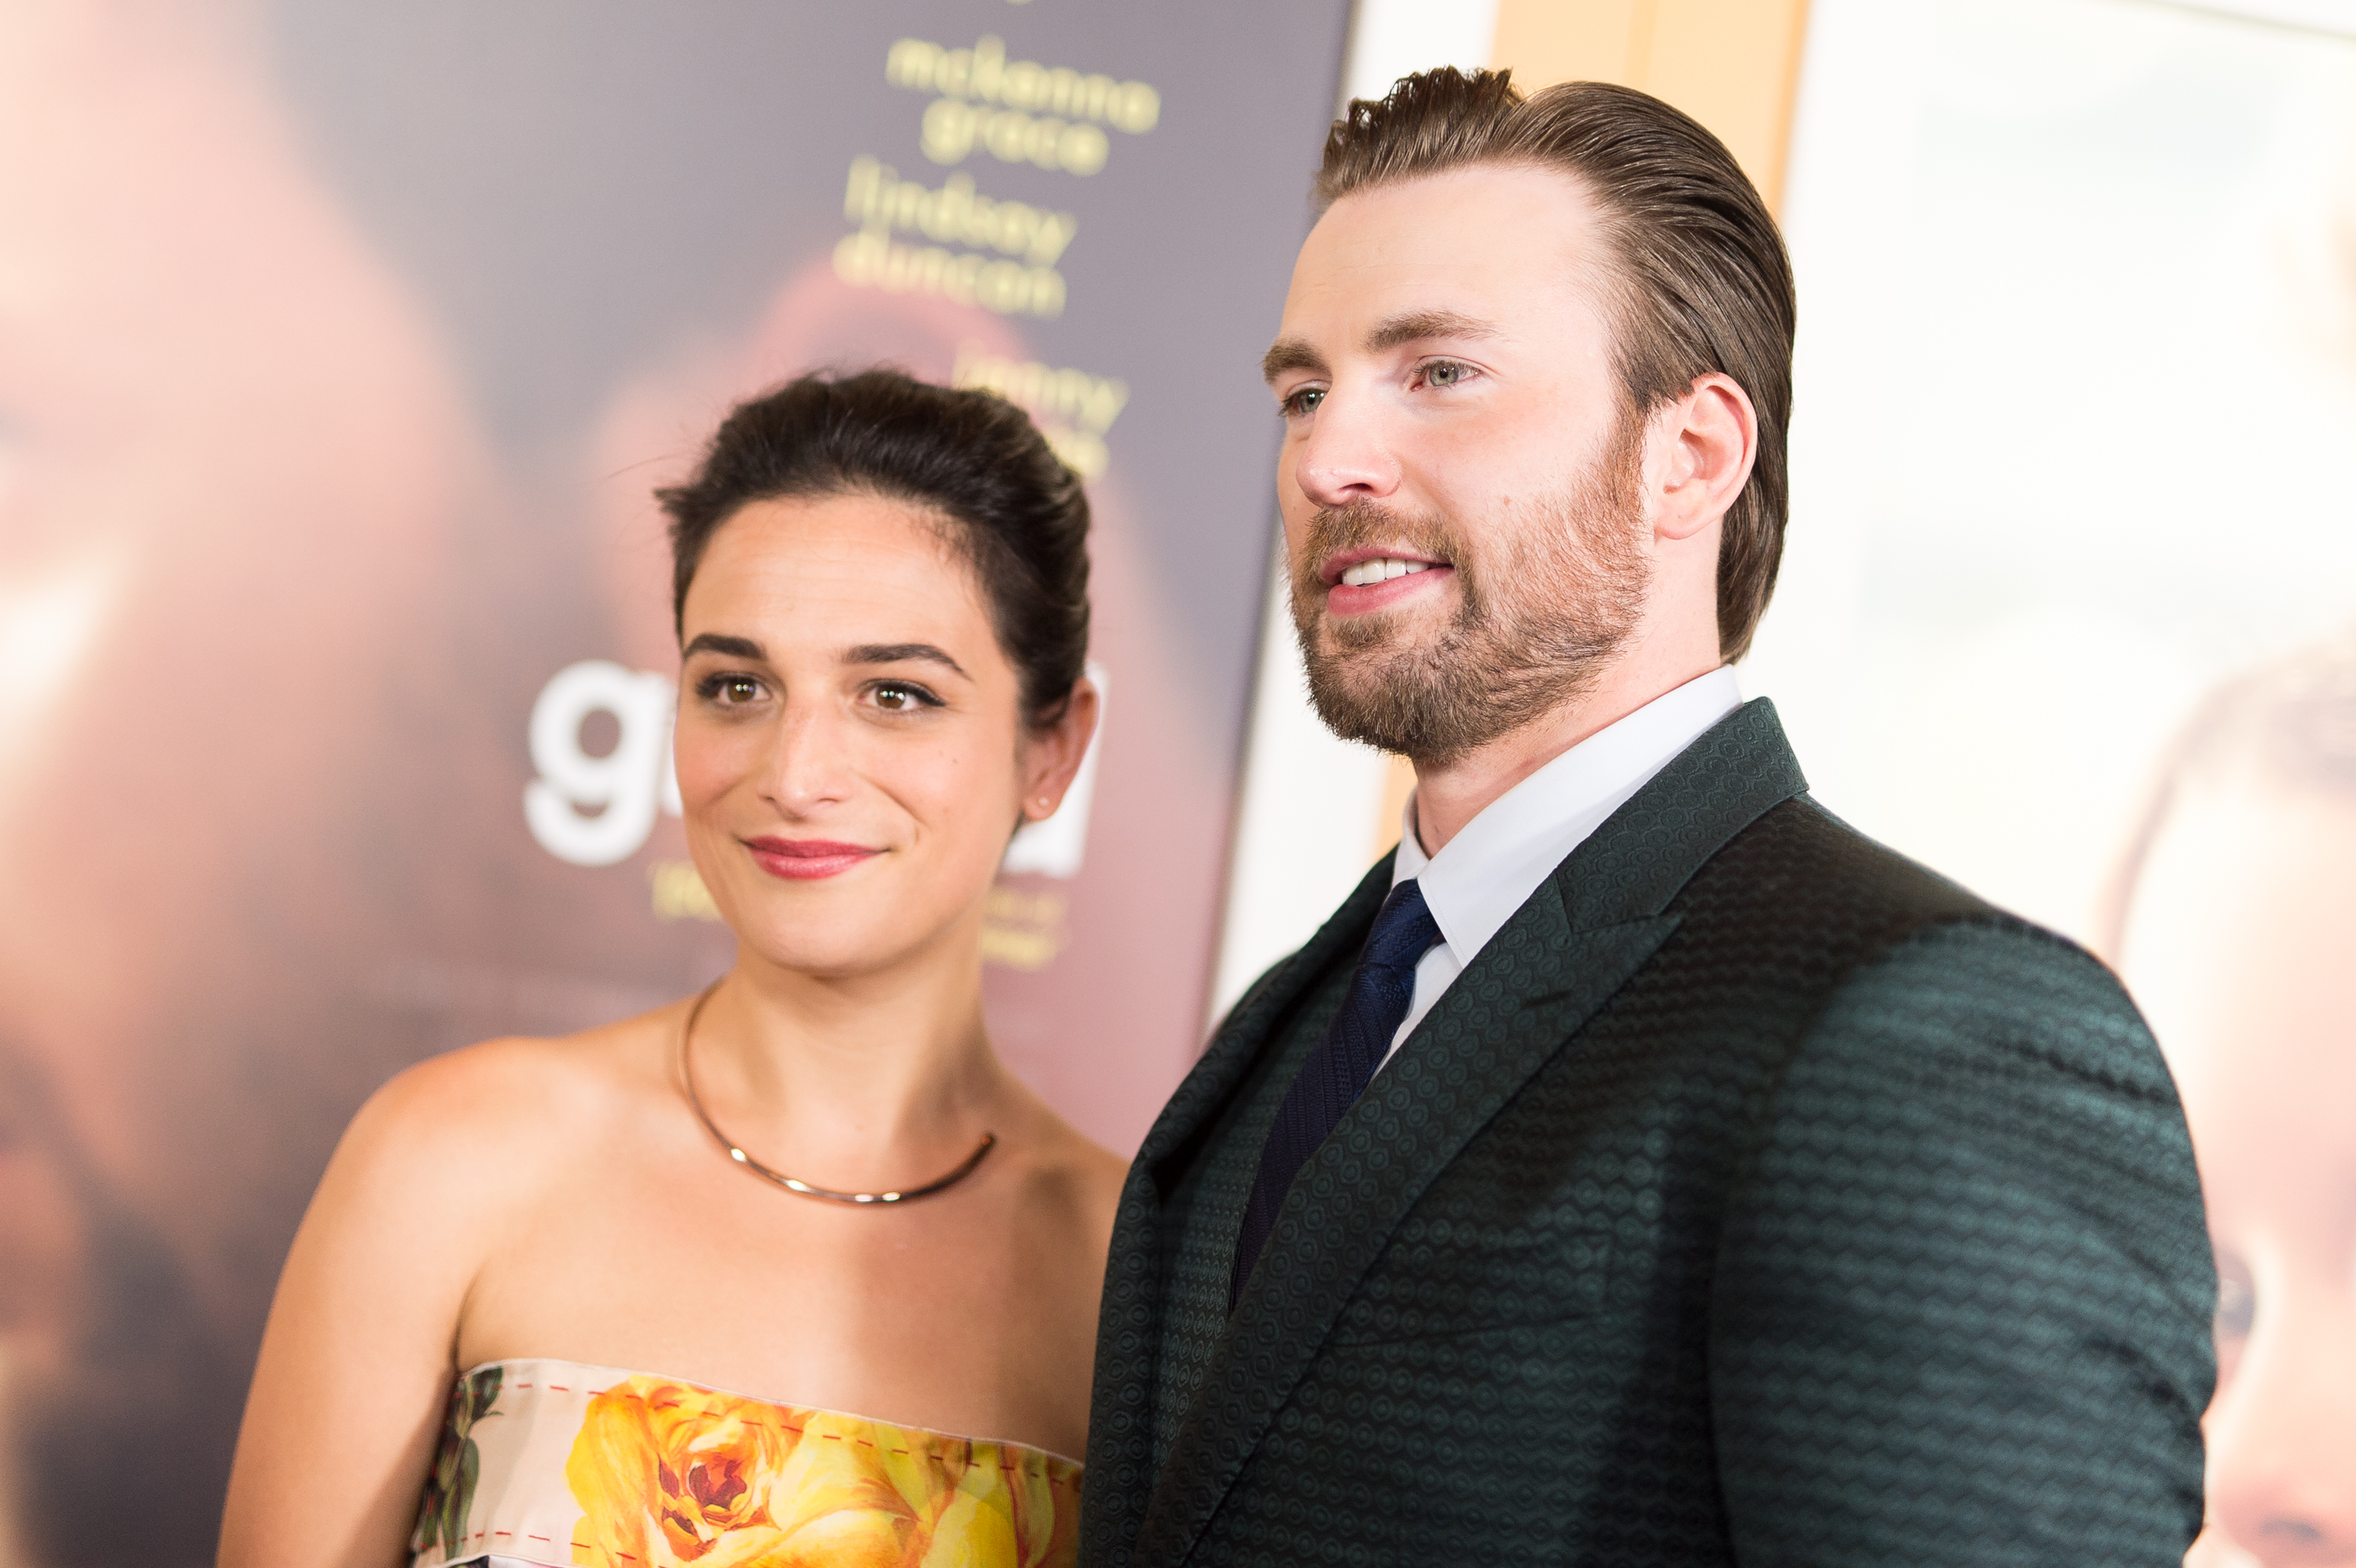 chris evans dating jenny slate